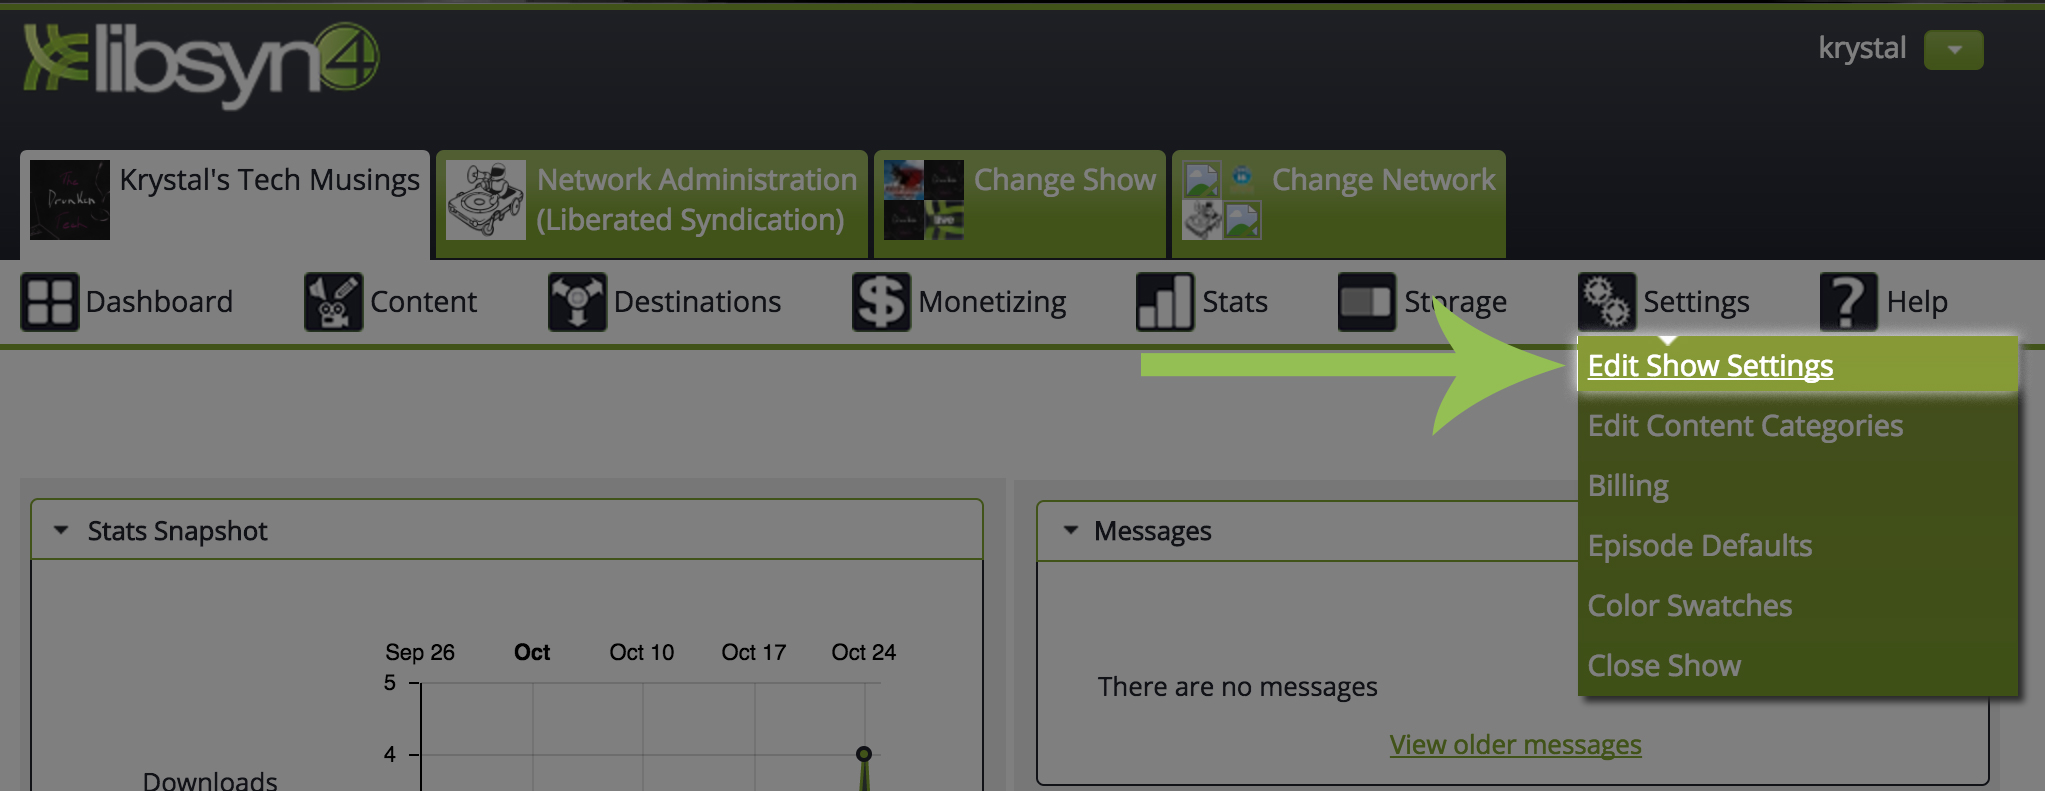 Accessing Show Settings